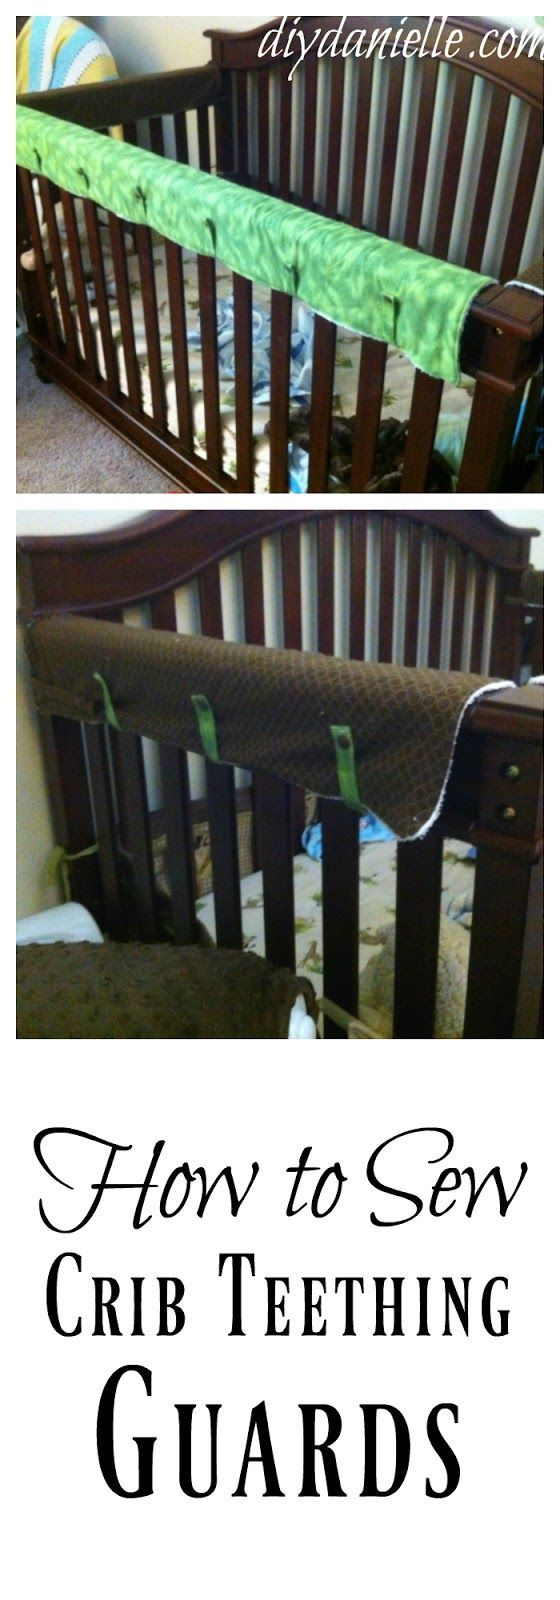 Gocrib adventure crib for sale - How To Sew A Crib Teething Guard